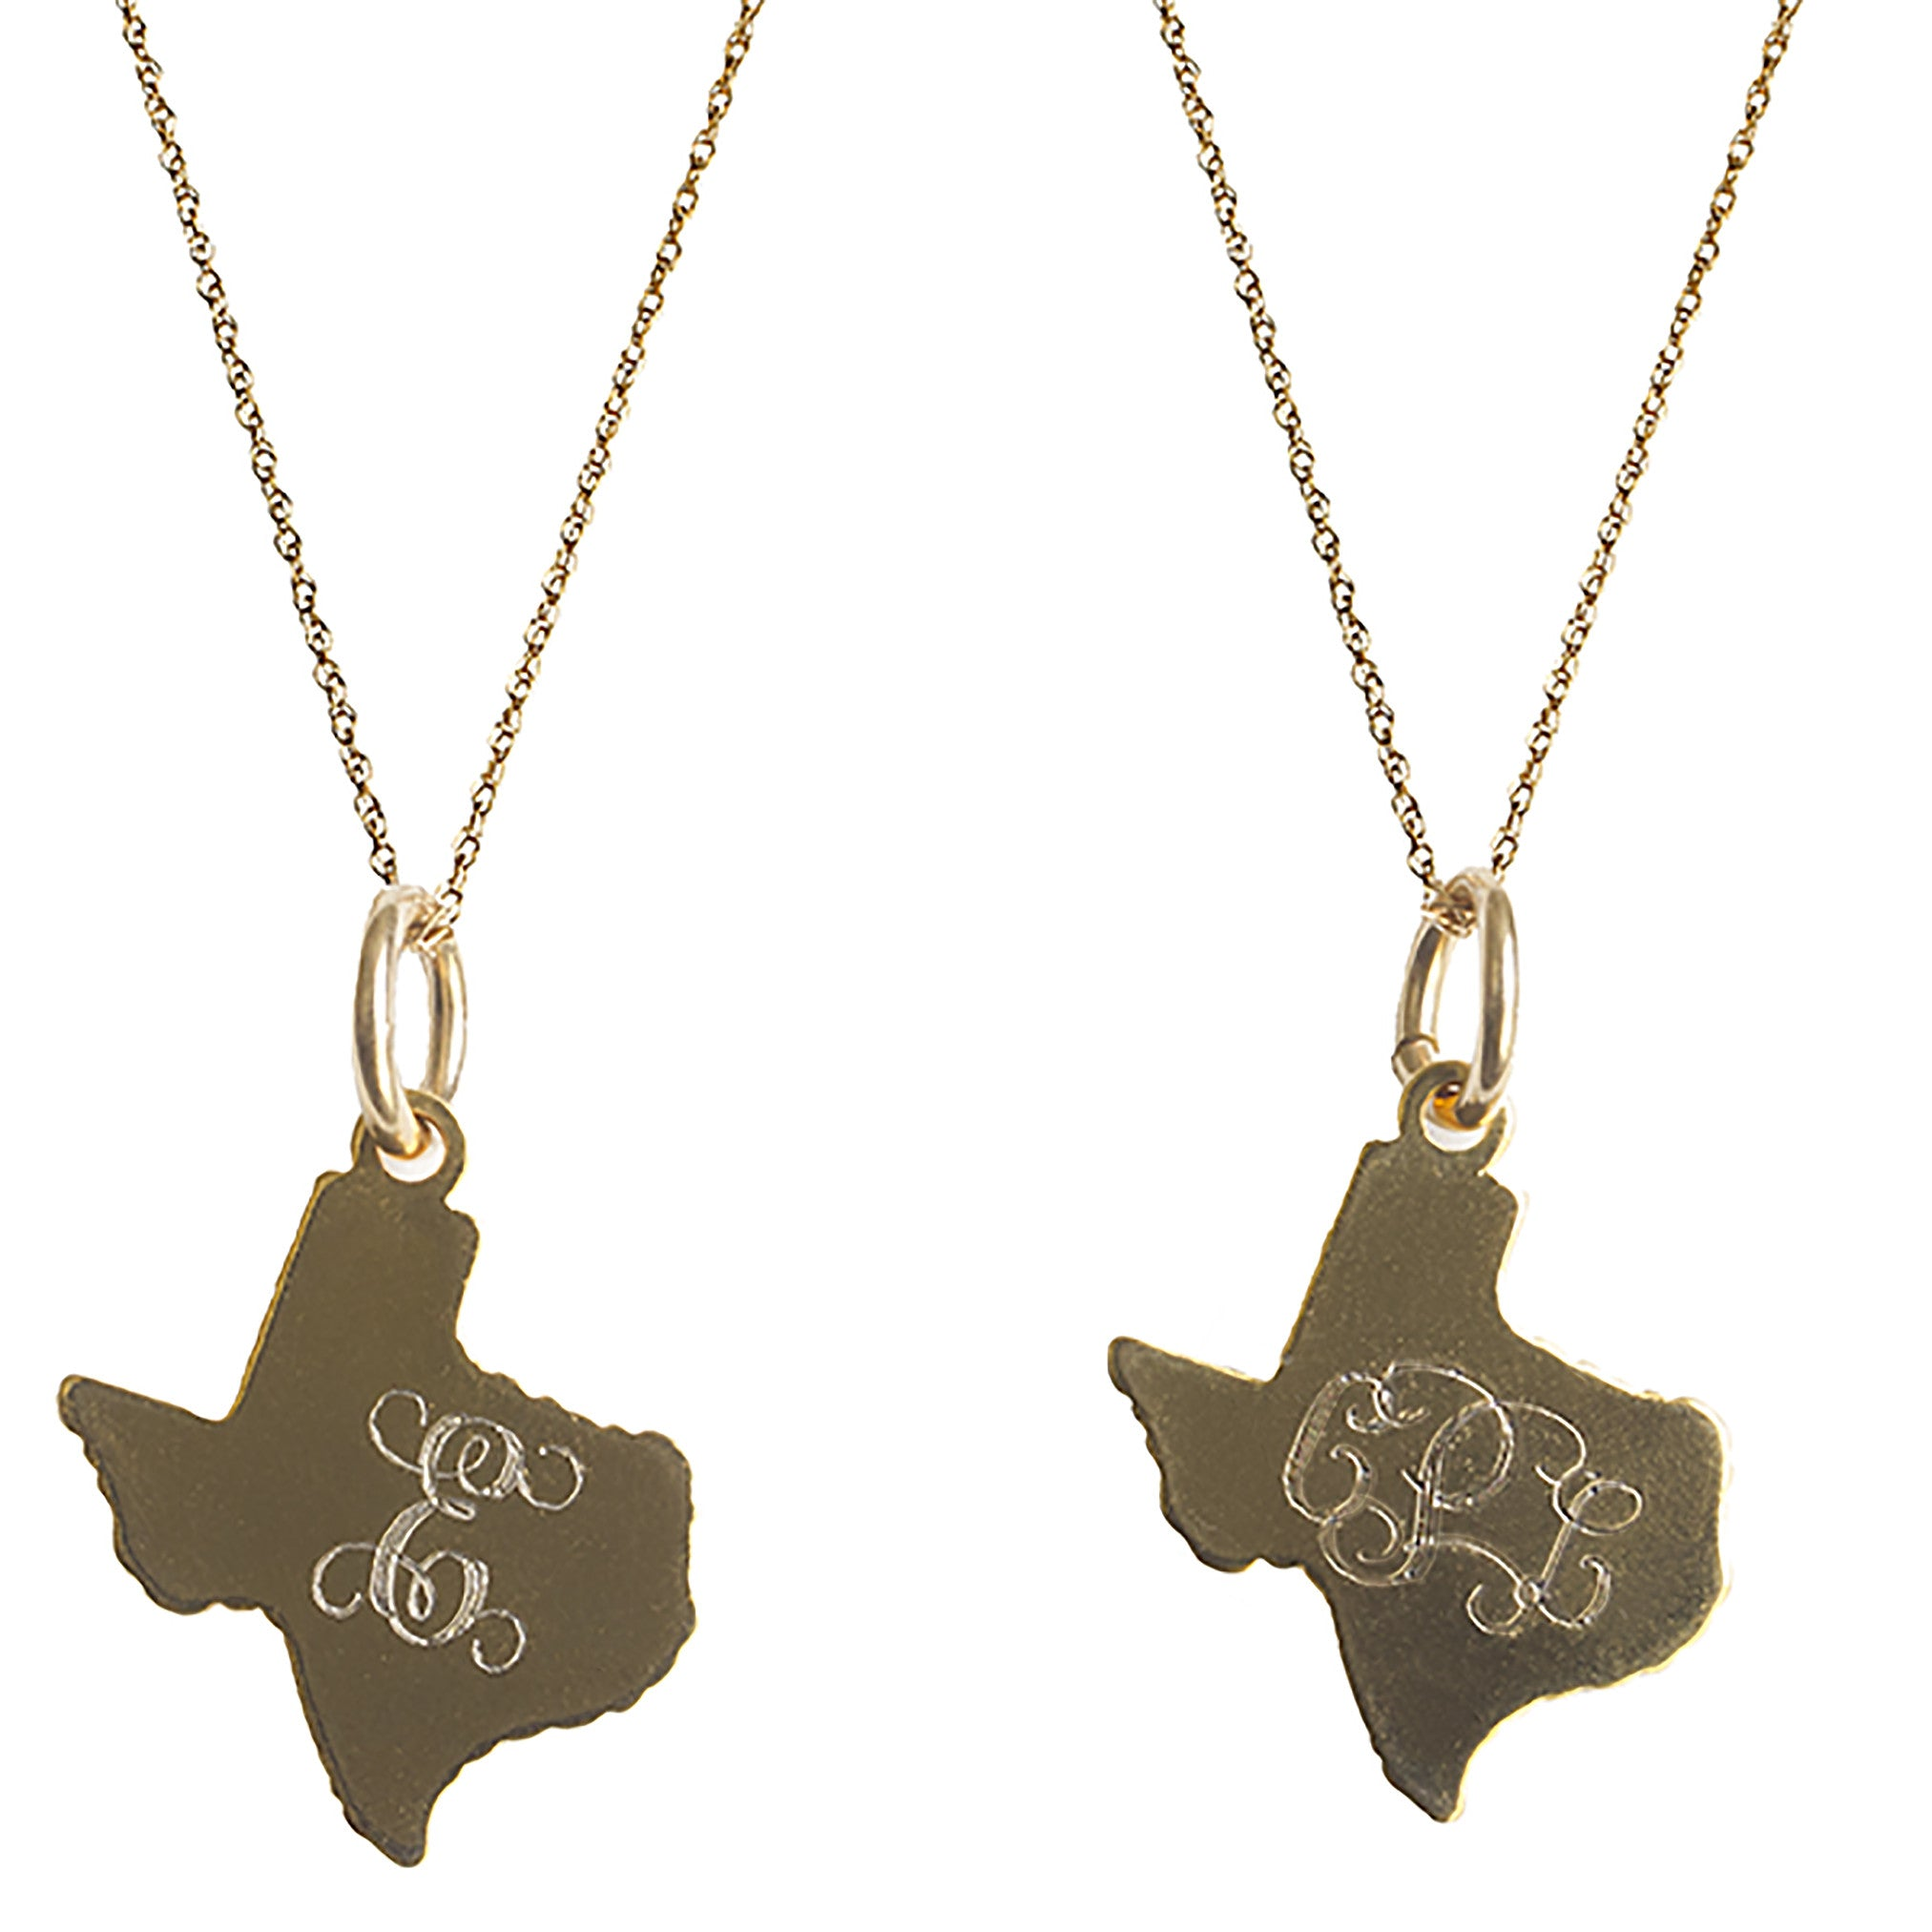 Texas pendant golden thread inc texas pendant mozeypictures Images